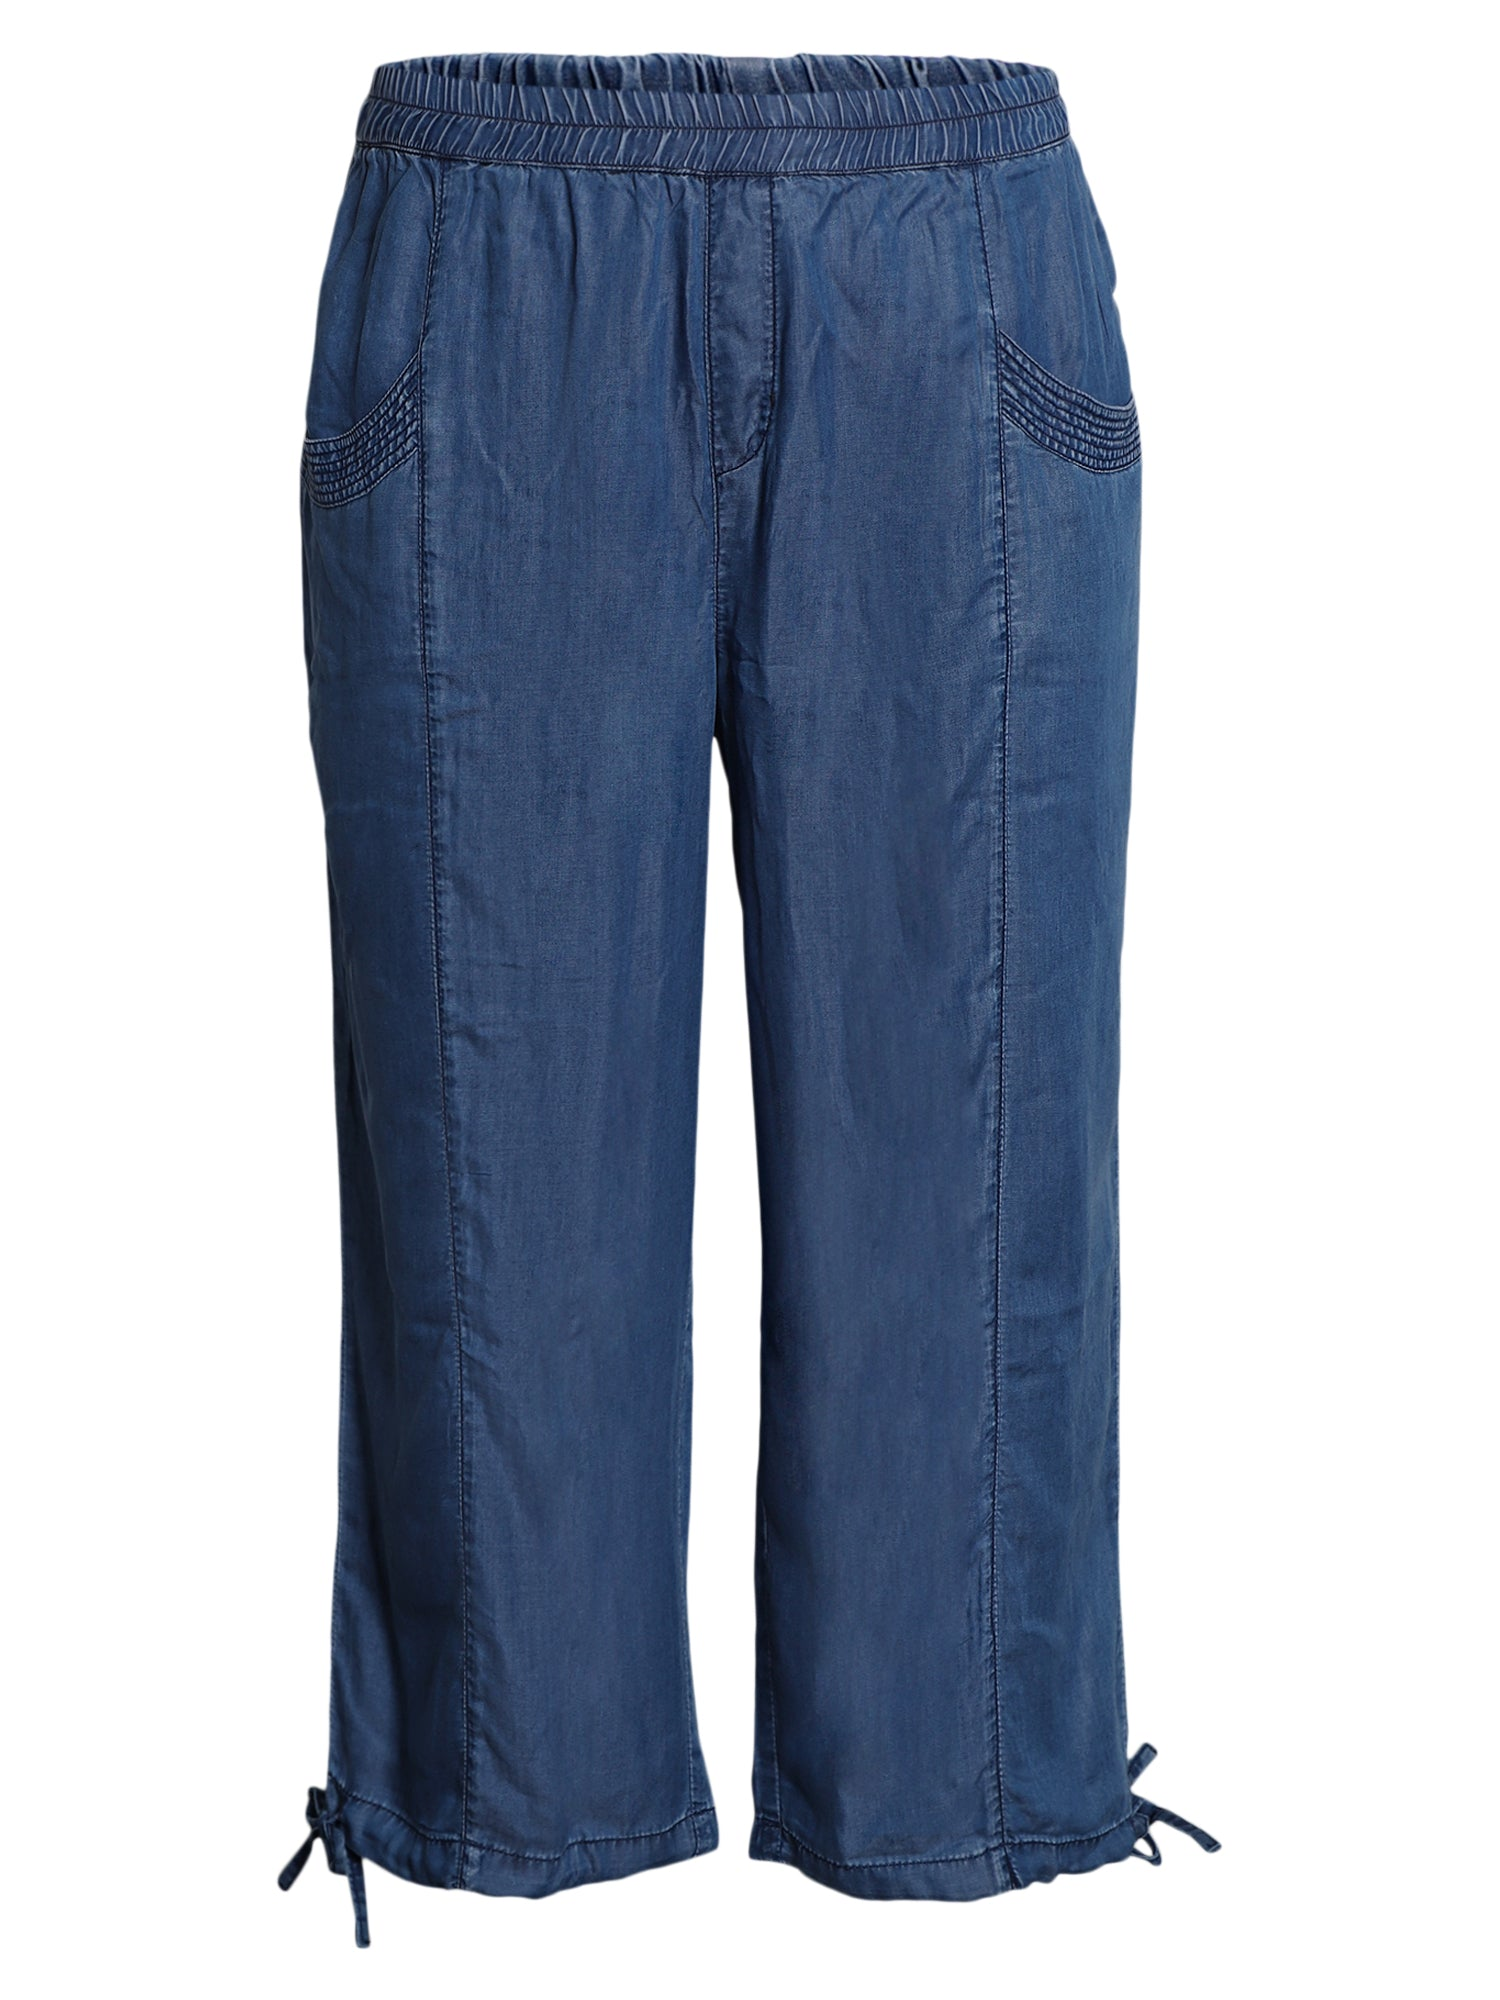 Image of   Bukser - Sunbleached denim